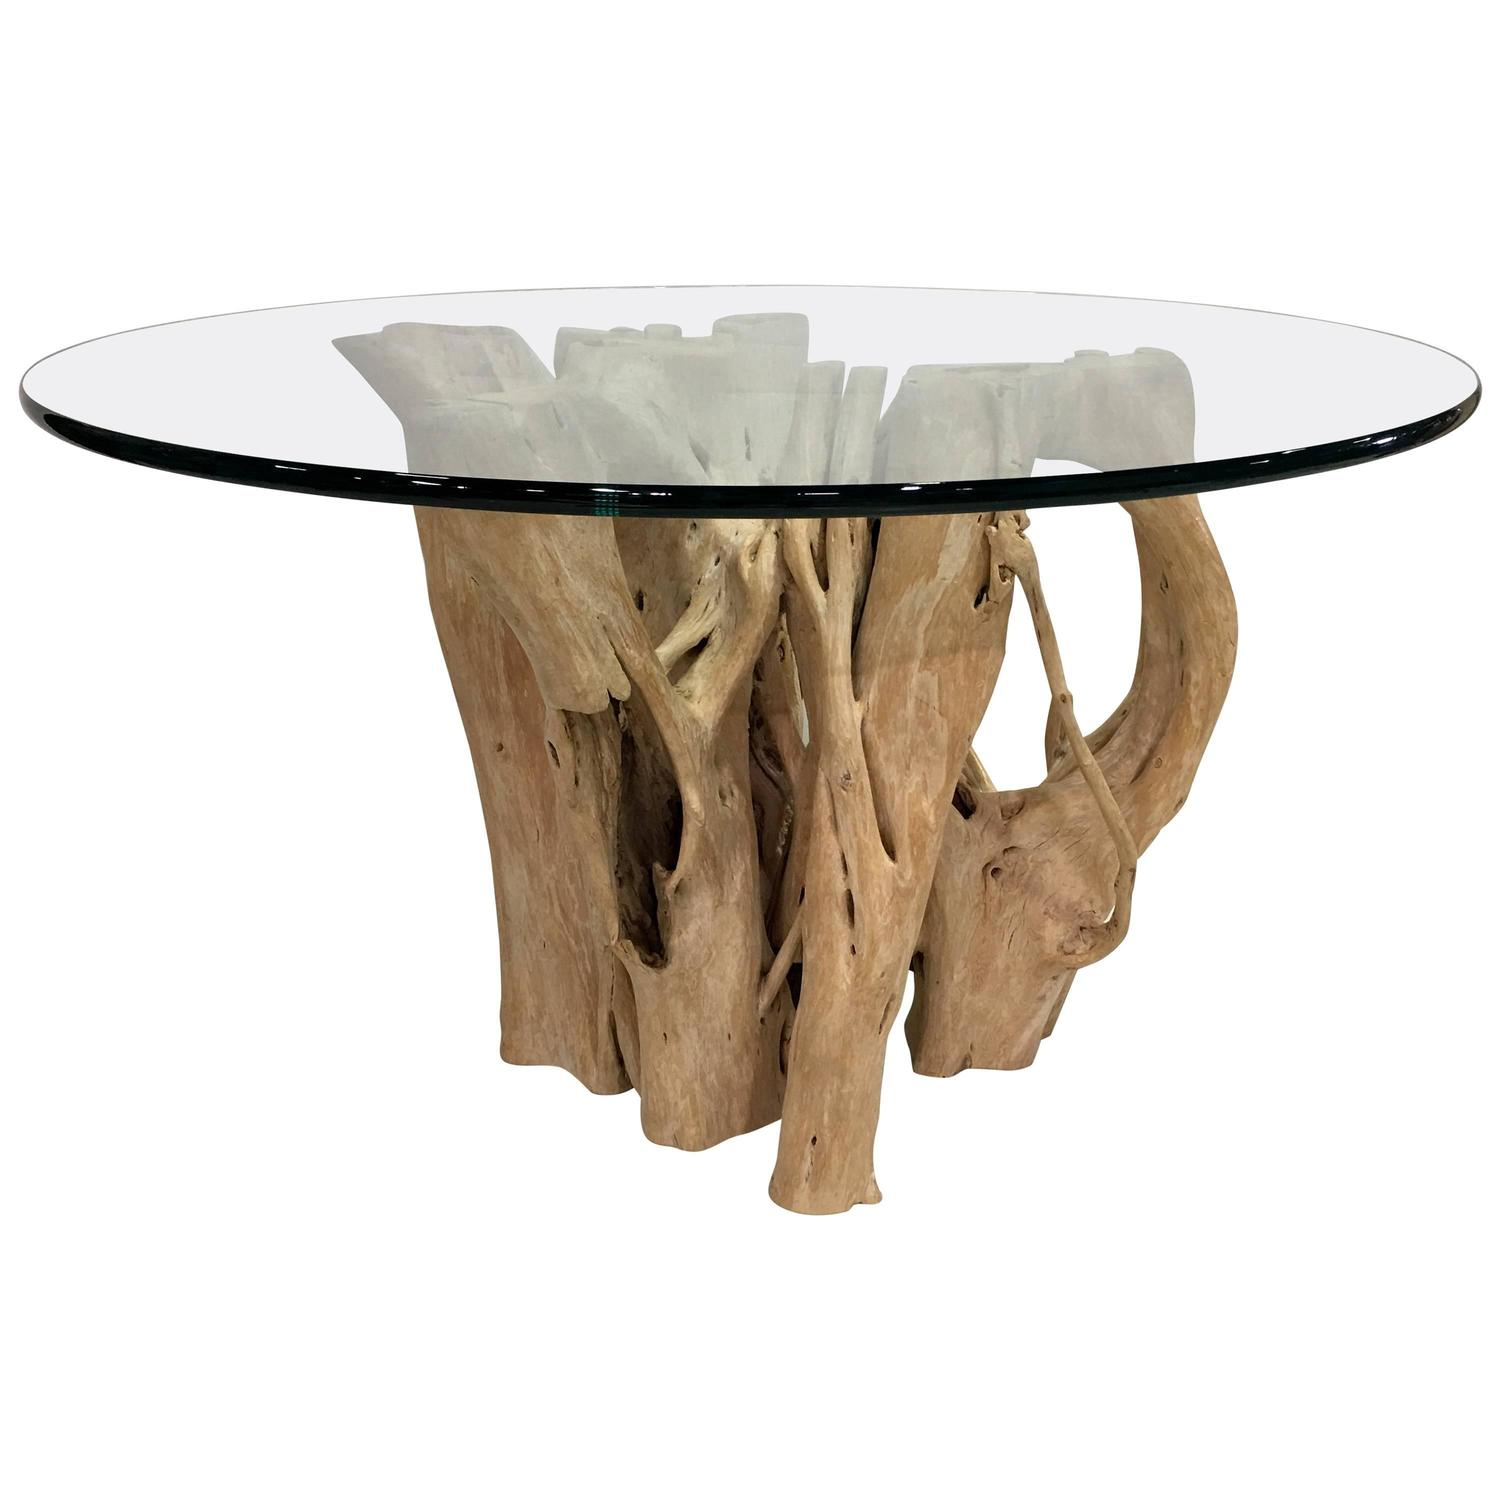 Michael Taylor Tables - 51 For Sale at 1stdibs